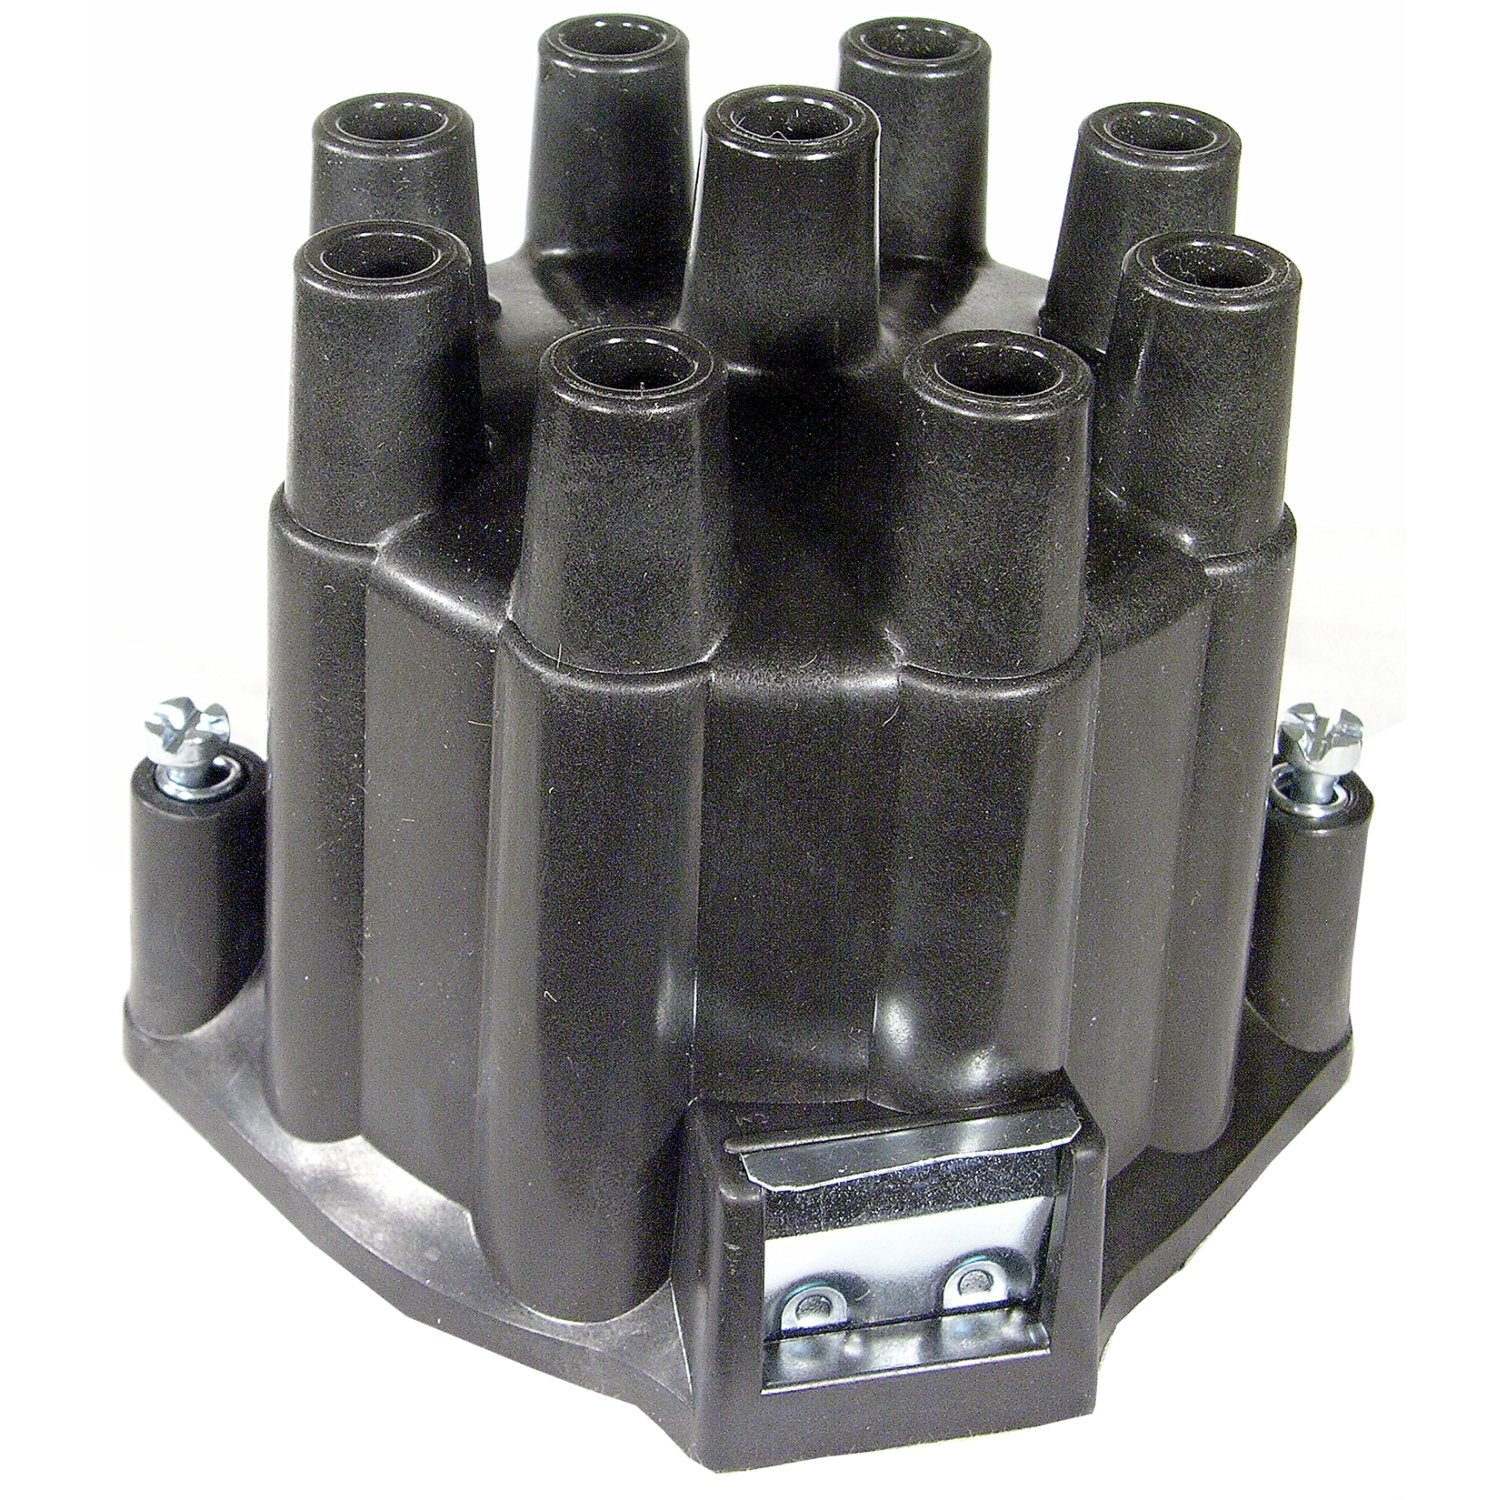 ACDelco D308R Professional Ignition Distributor Cap by ACDelco